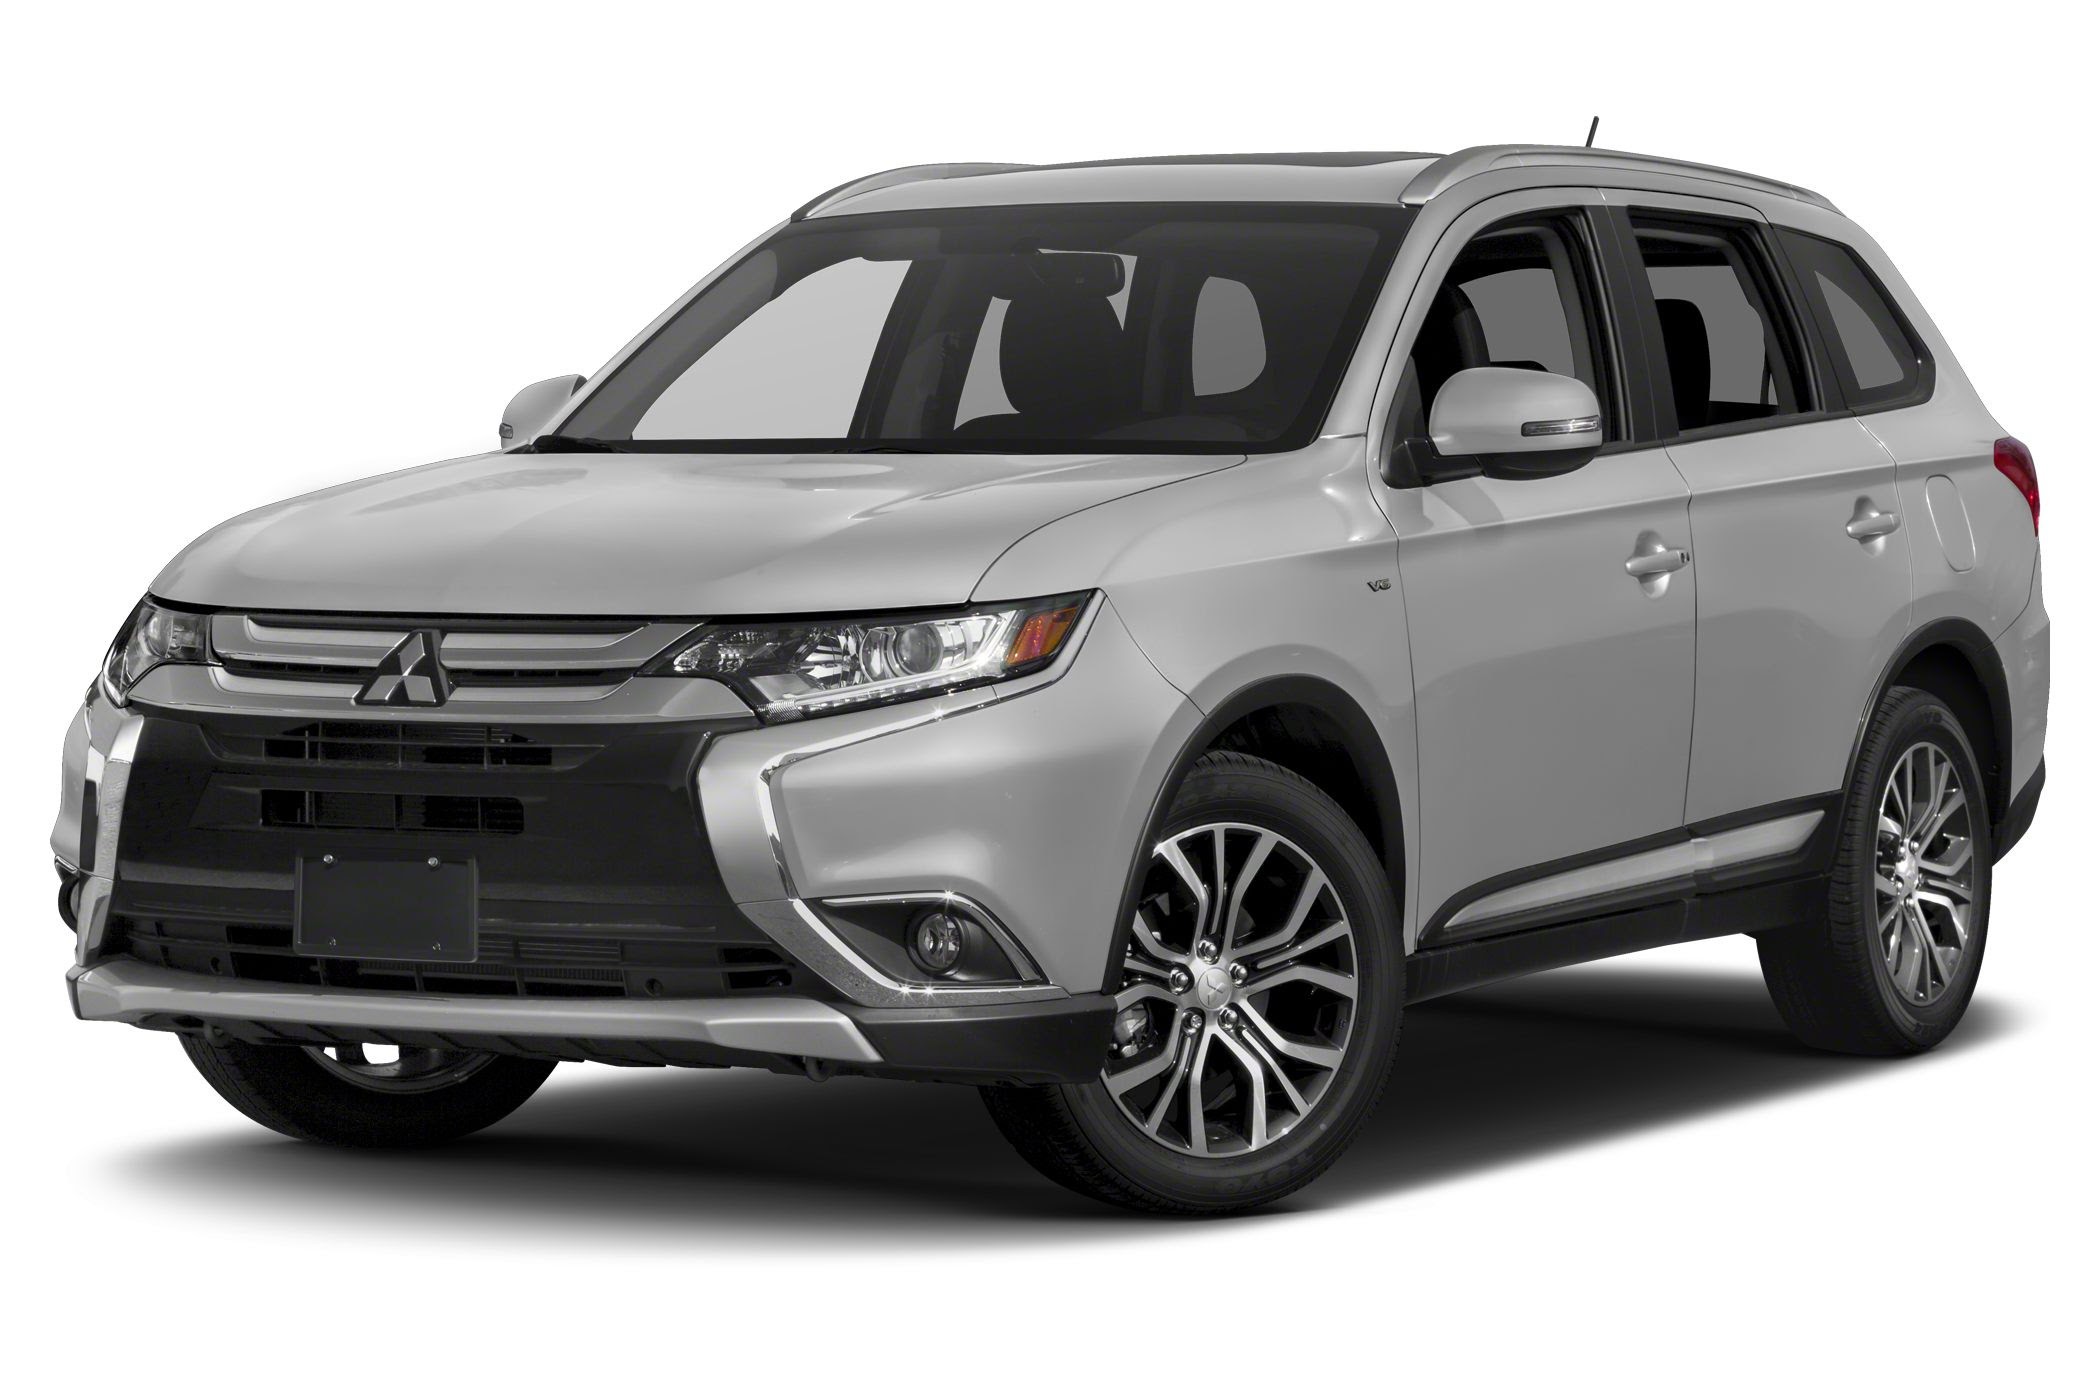 Mitsubishi Outlander News, Photos and Buying Information - Autoblog